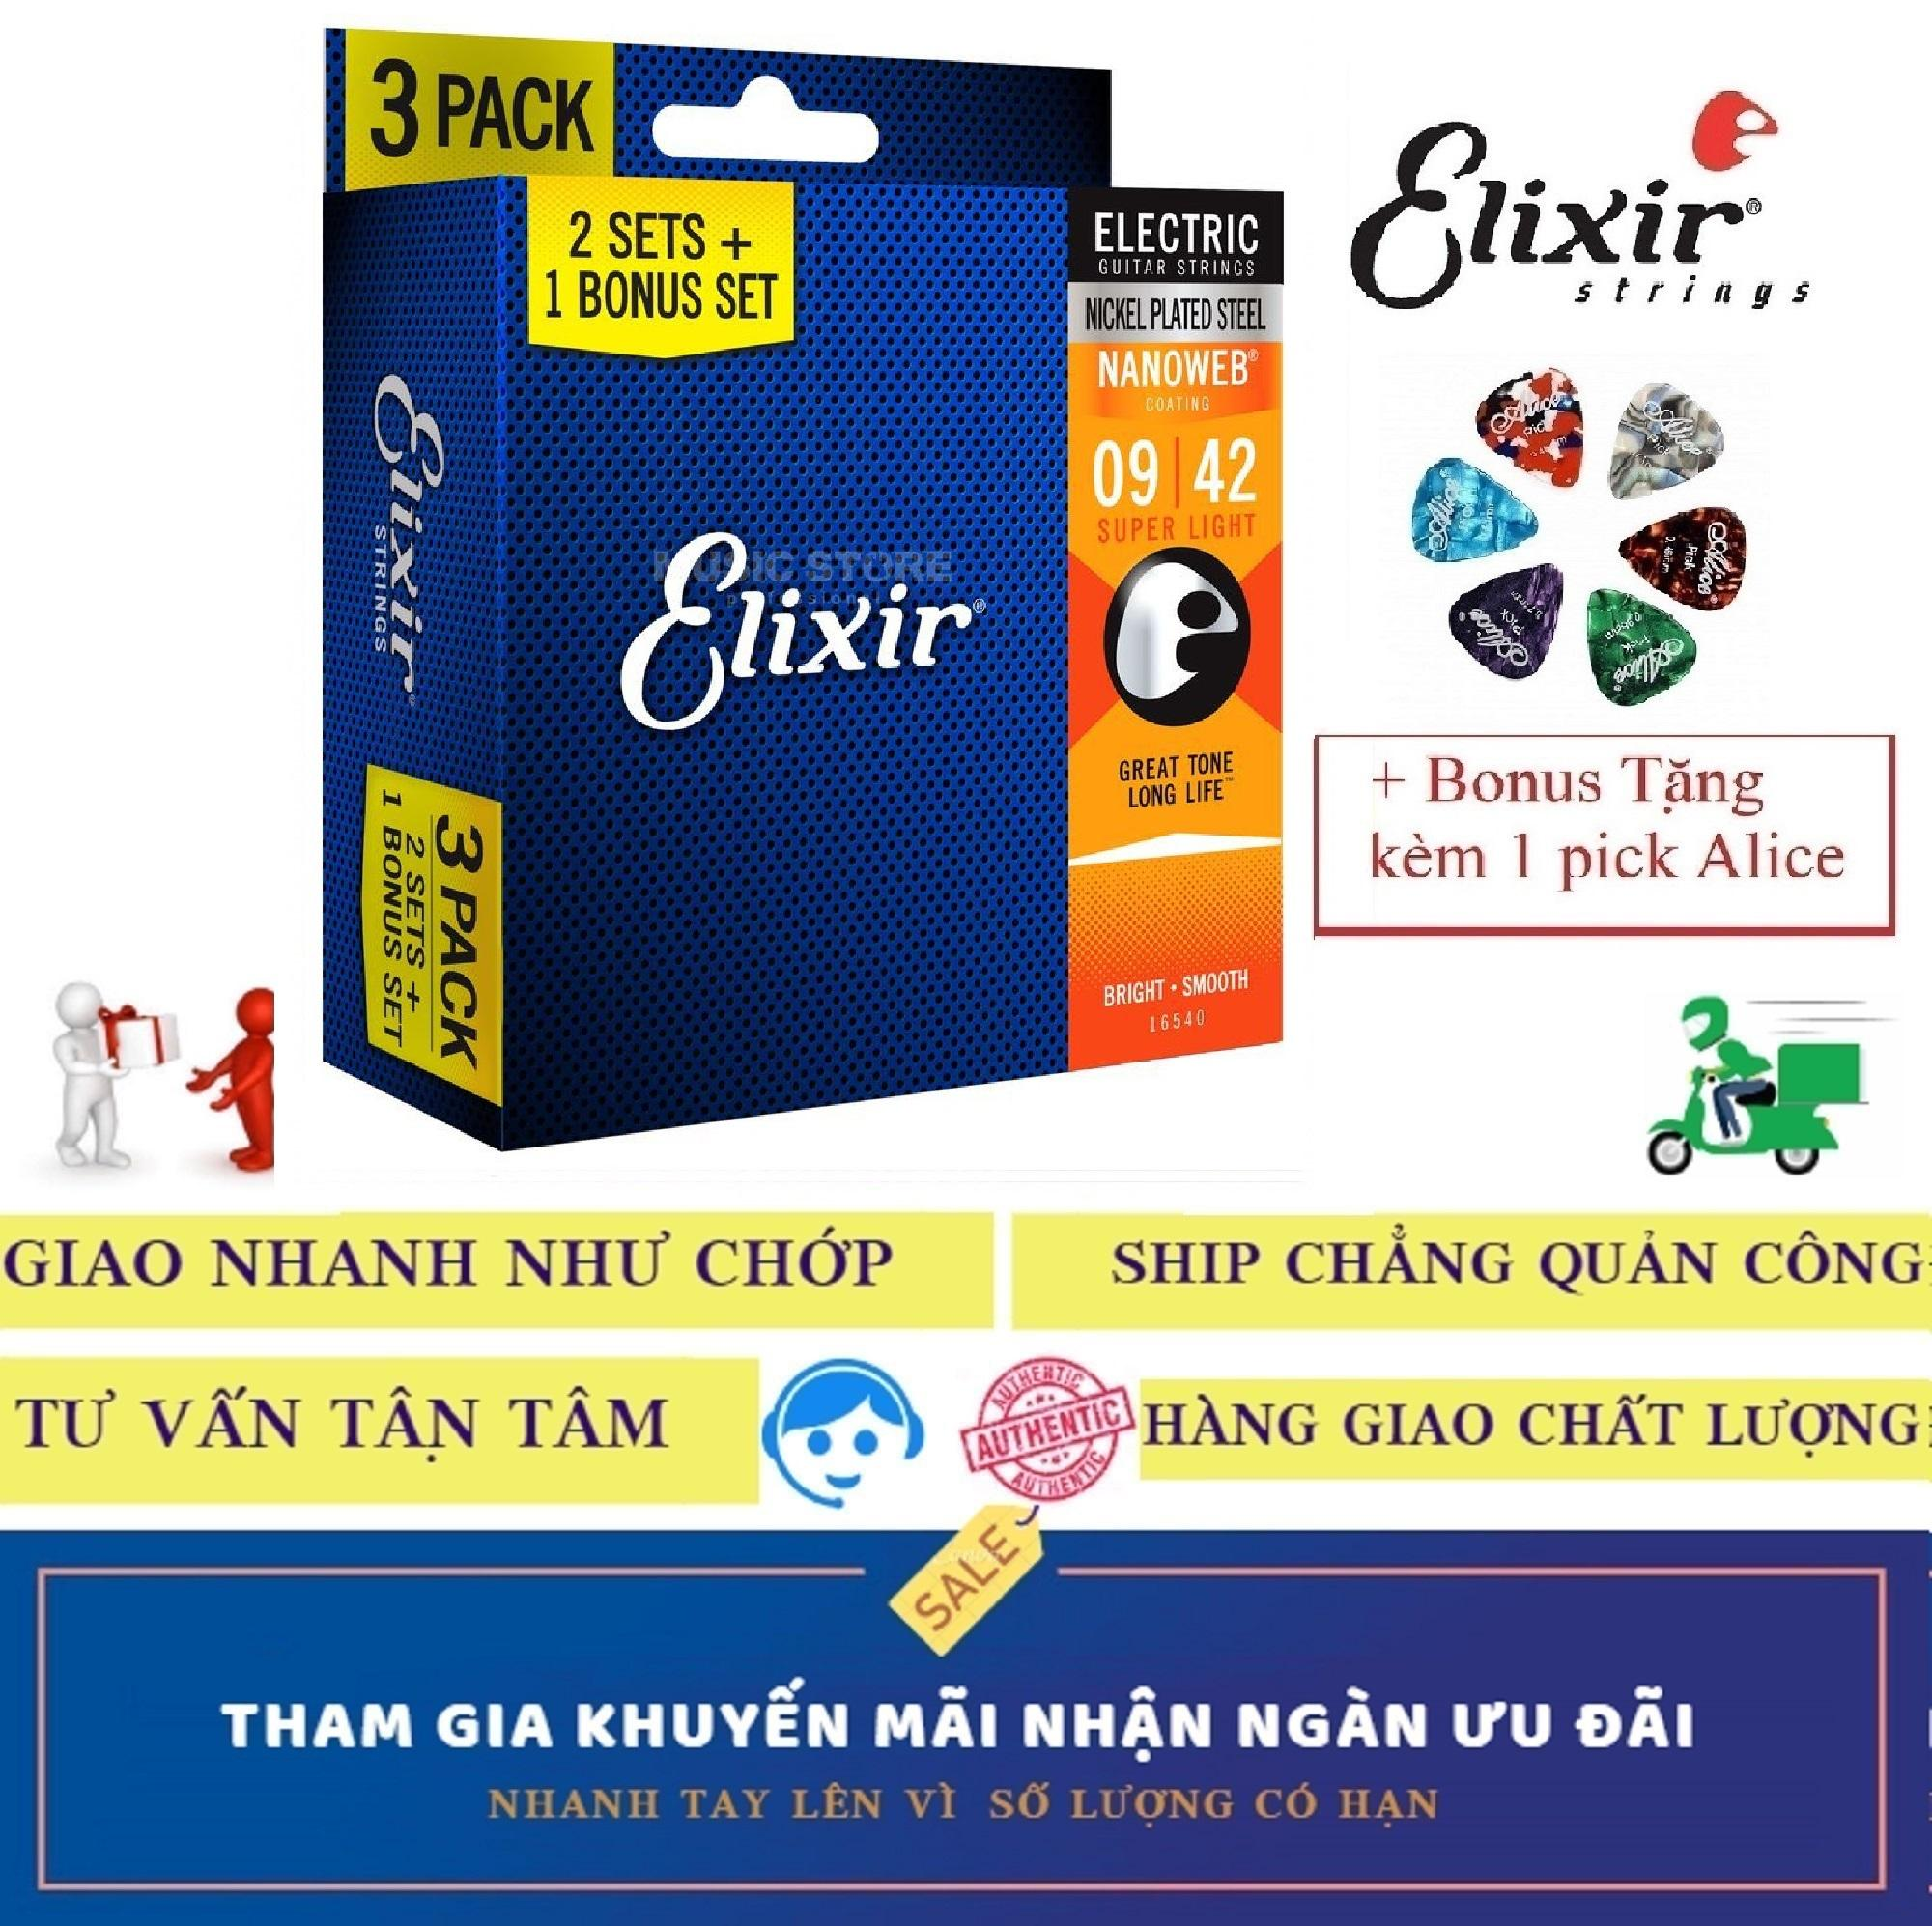 Combo Pack 3 Bộ Dây Đàn Elixir cao cấp 16540 (Cỡ 9) Electric Guitar điện Nickel Plated Steel With NANOWEB COATING Strings